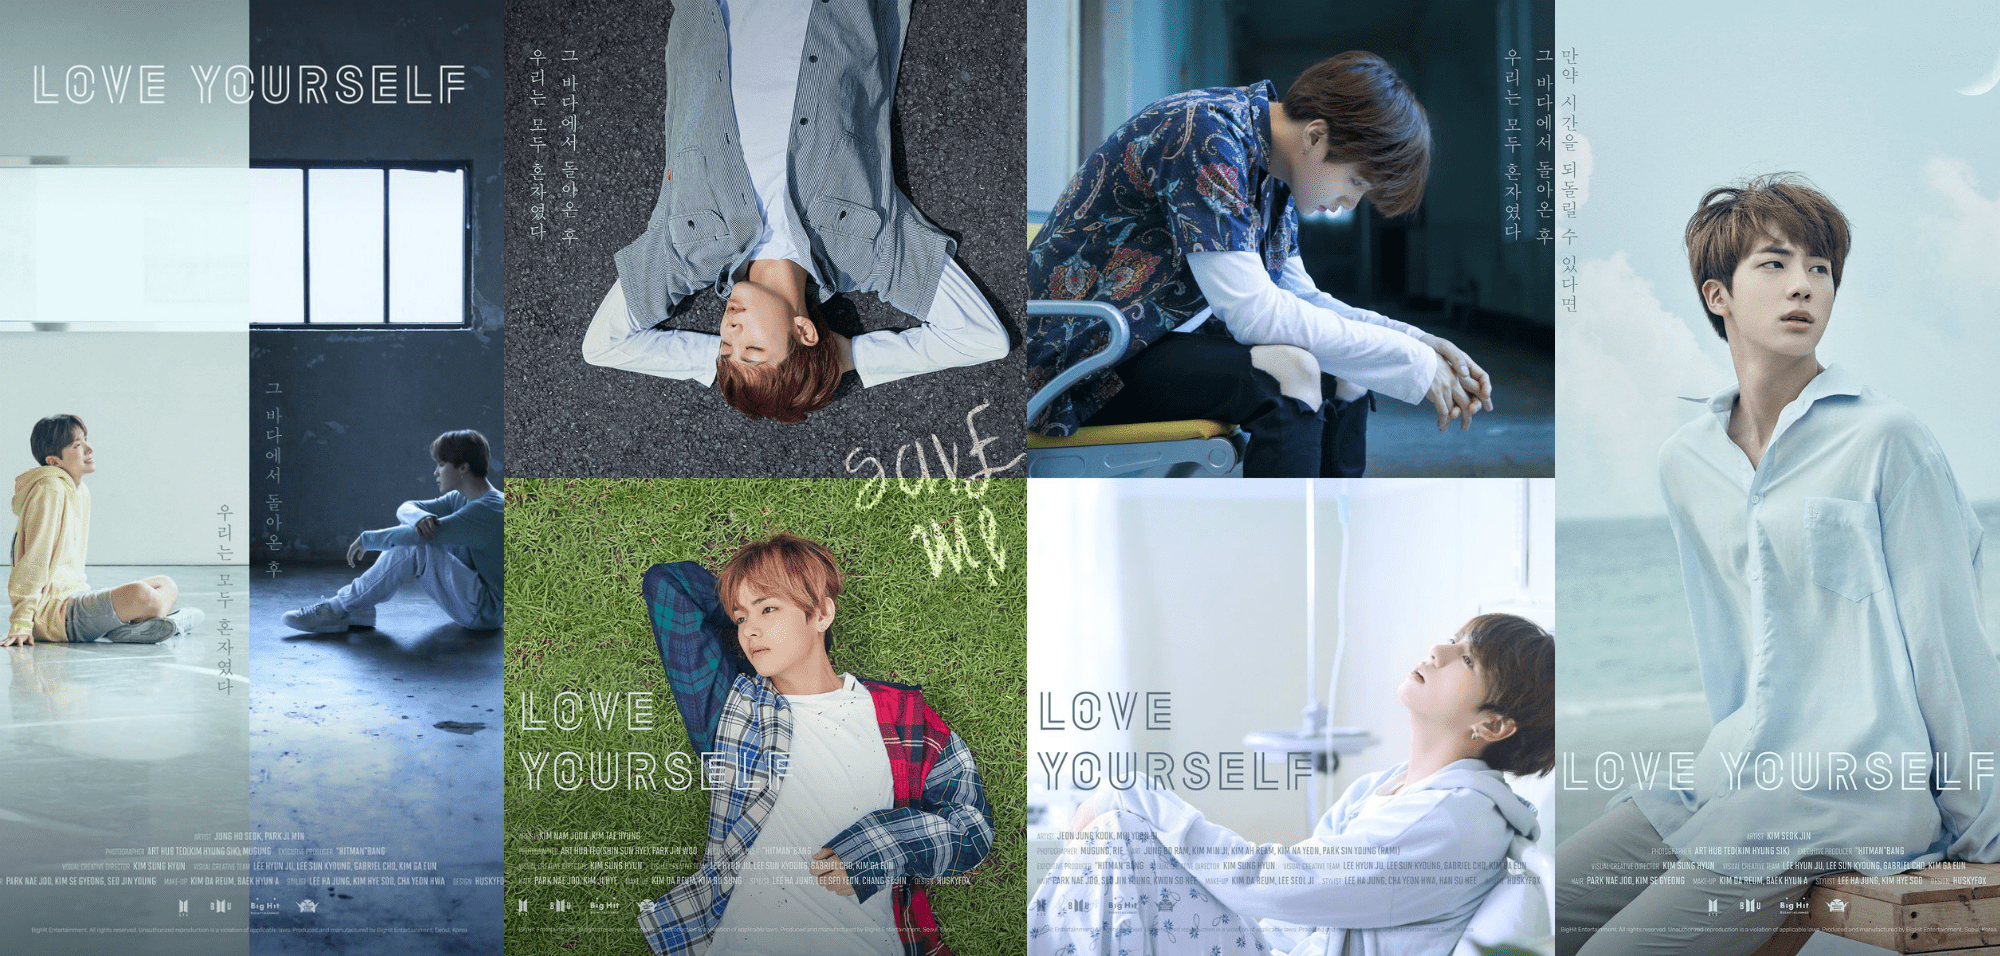 Bts Implies Tragic Sea Story In Second Set Of Love Yourself